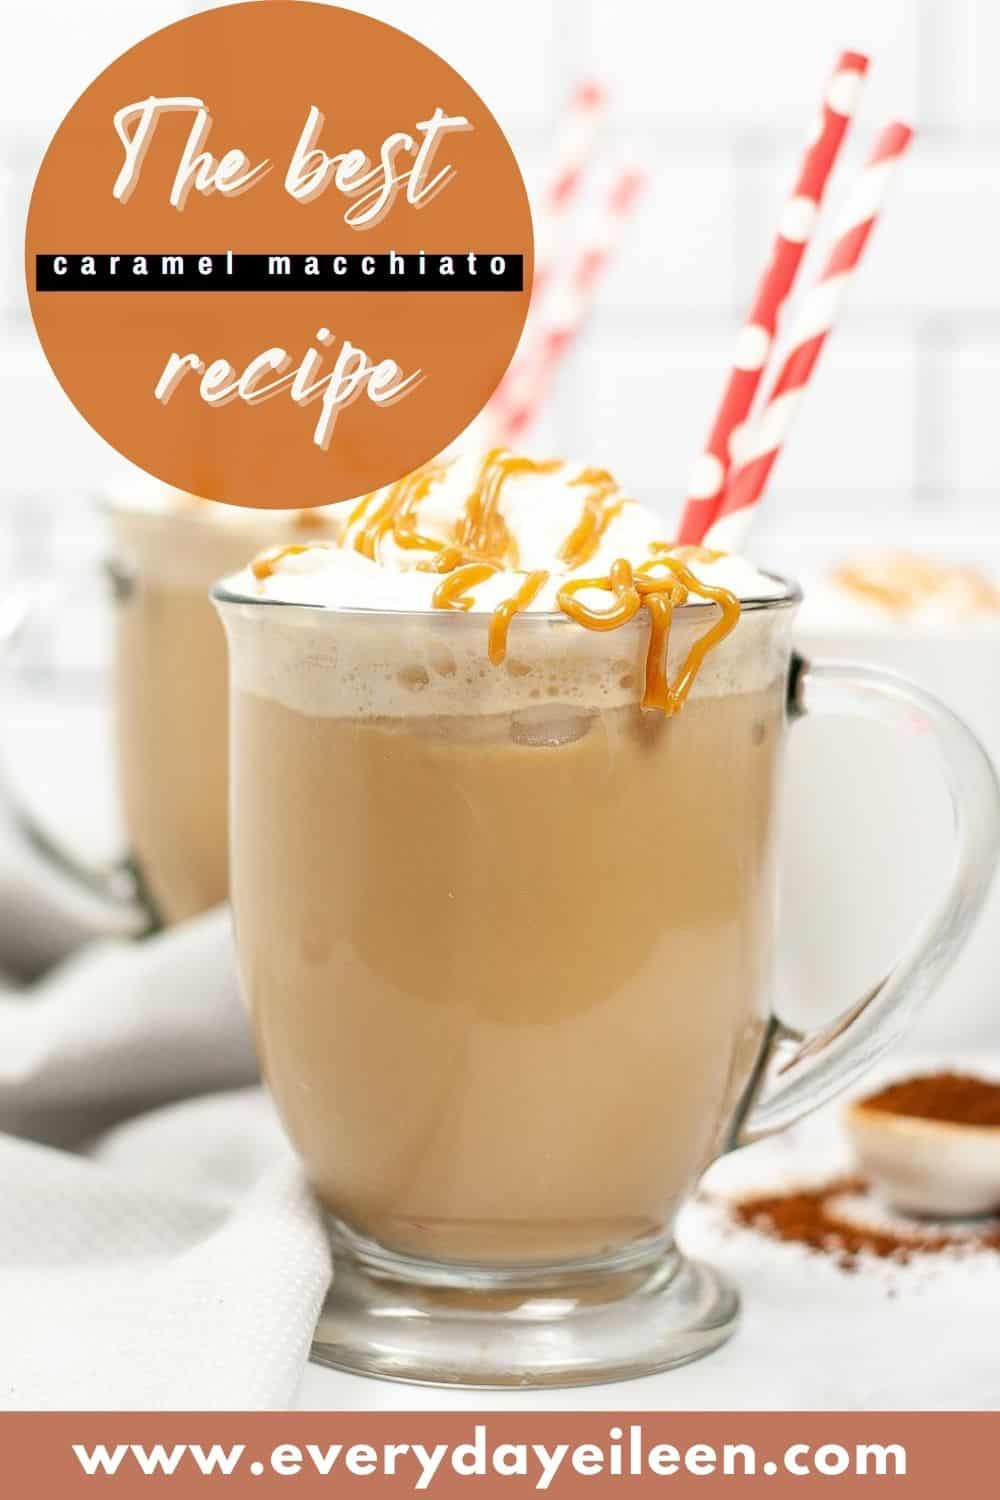 Homemade Caramel Macchiato, decadently delicious whether you prefer iced or hot. It takes just a few minutes to make your own easy copycat Starbucks coffee recipe. So cost effective to make your own latte. #caramelmocchiato #copycatstarbuckslatte #everydayeileen via @/everydayeileen/